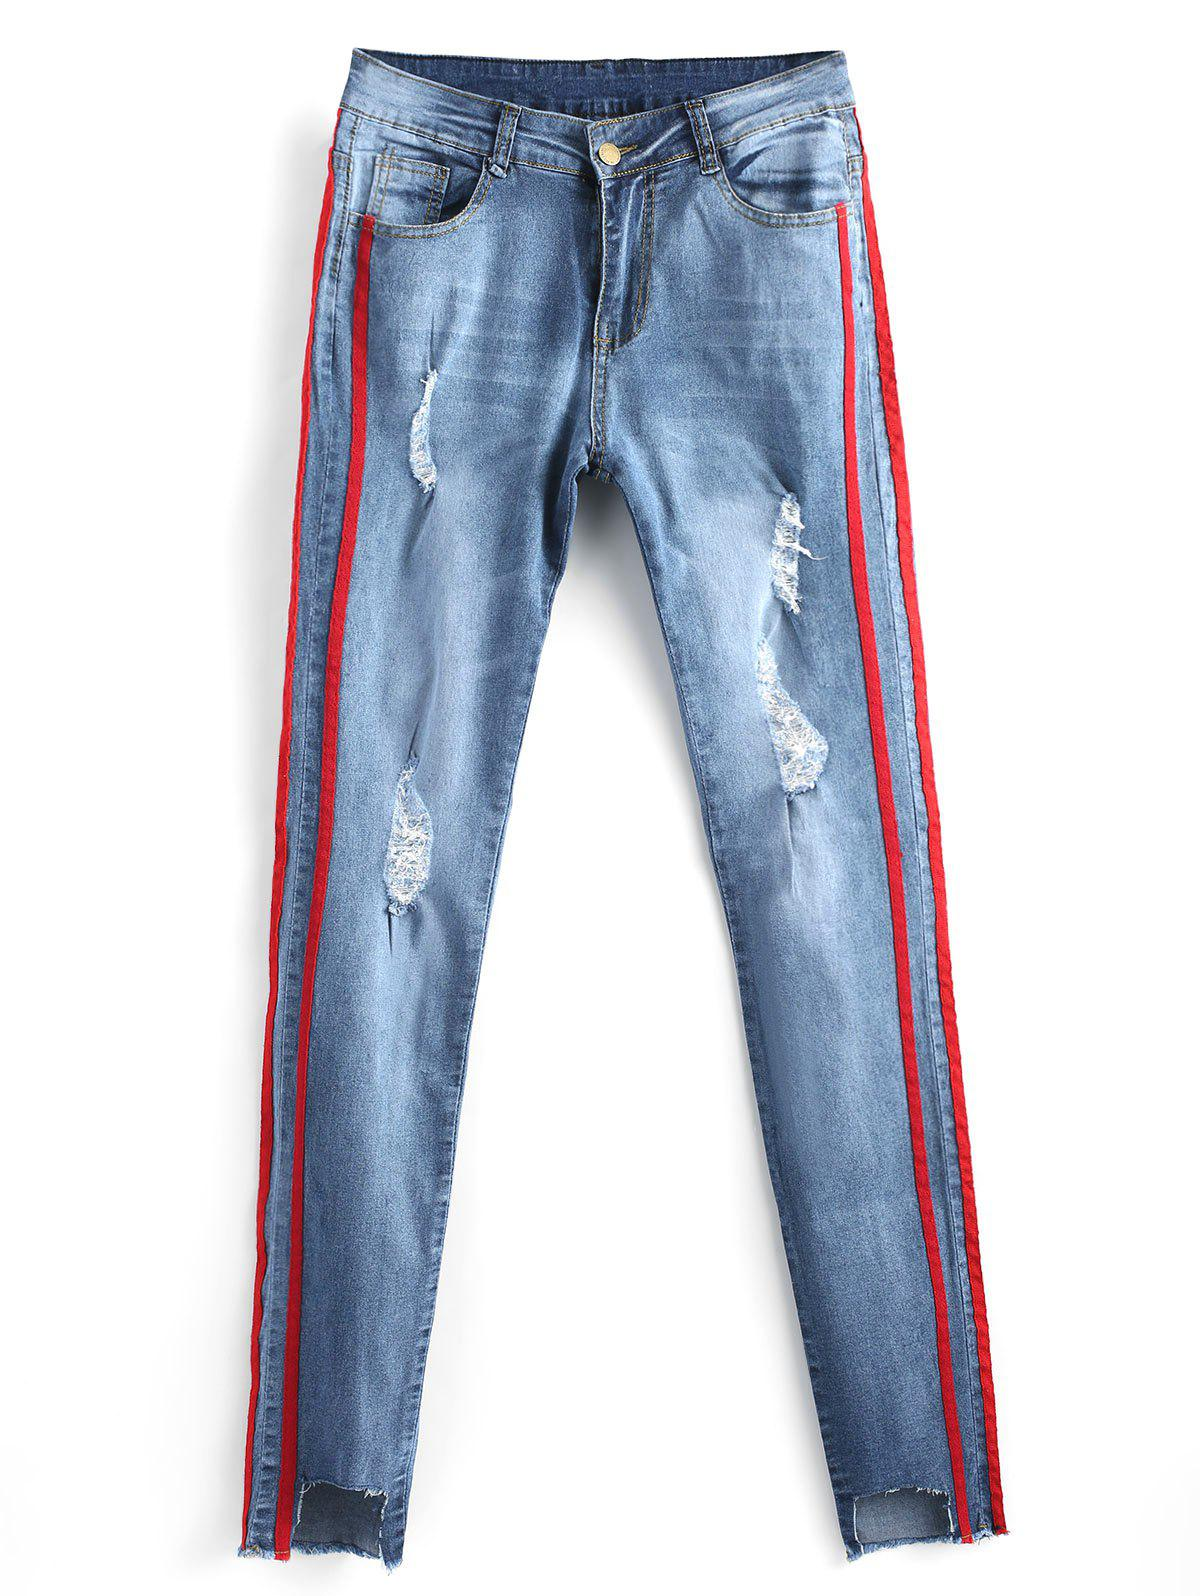 Cut Out Frayed Ripped Jeans 250814003